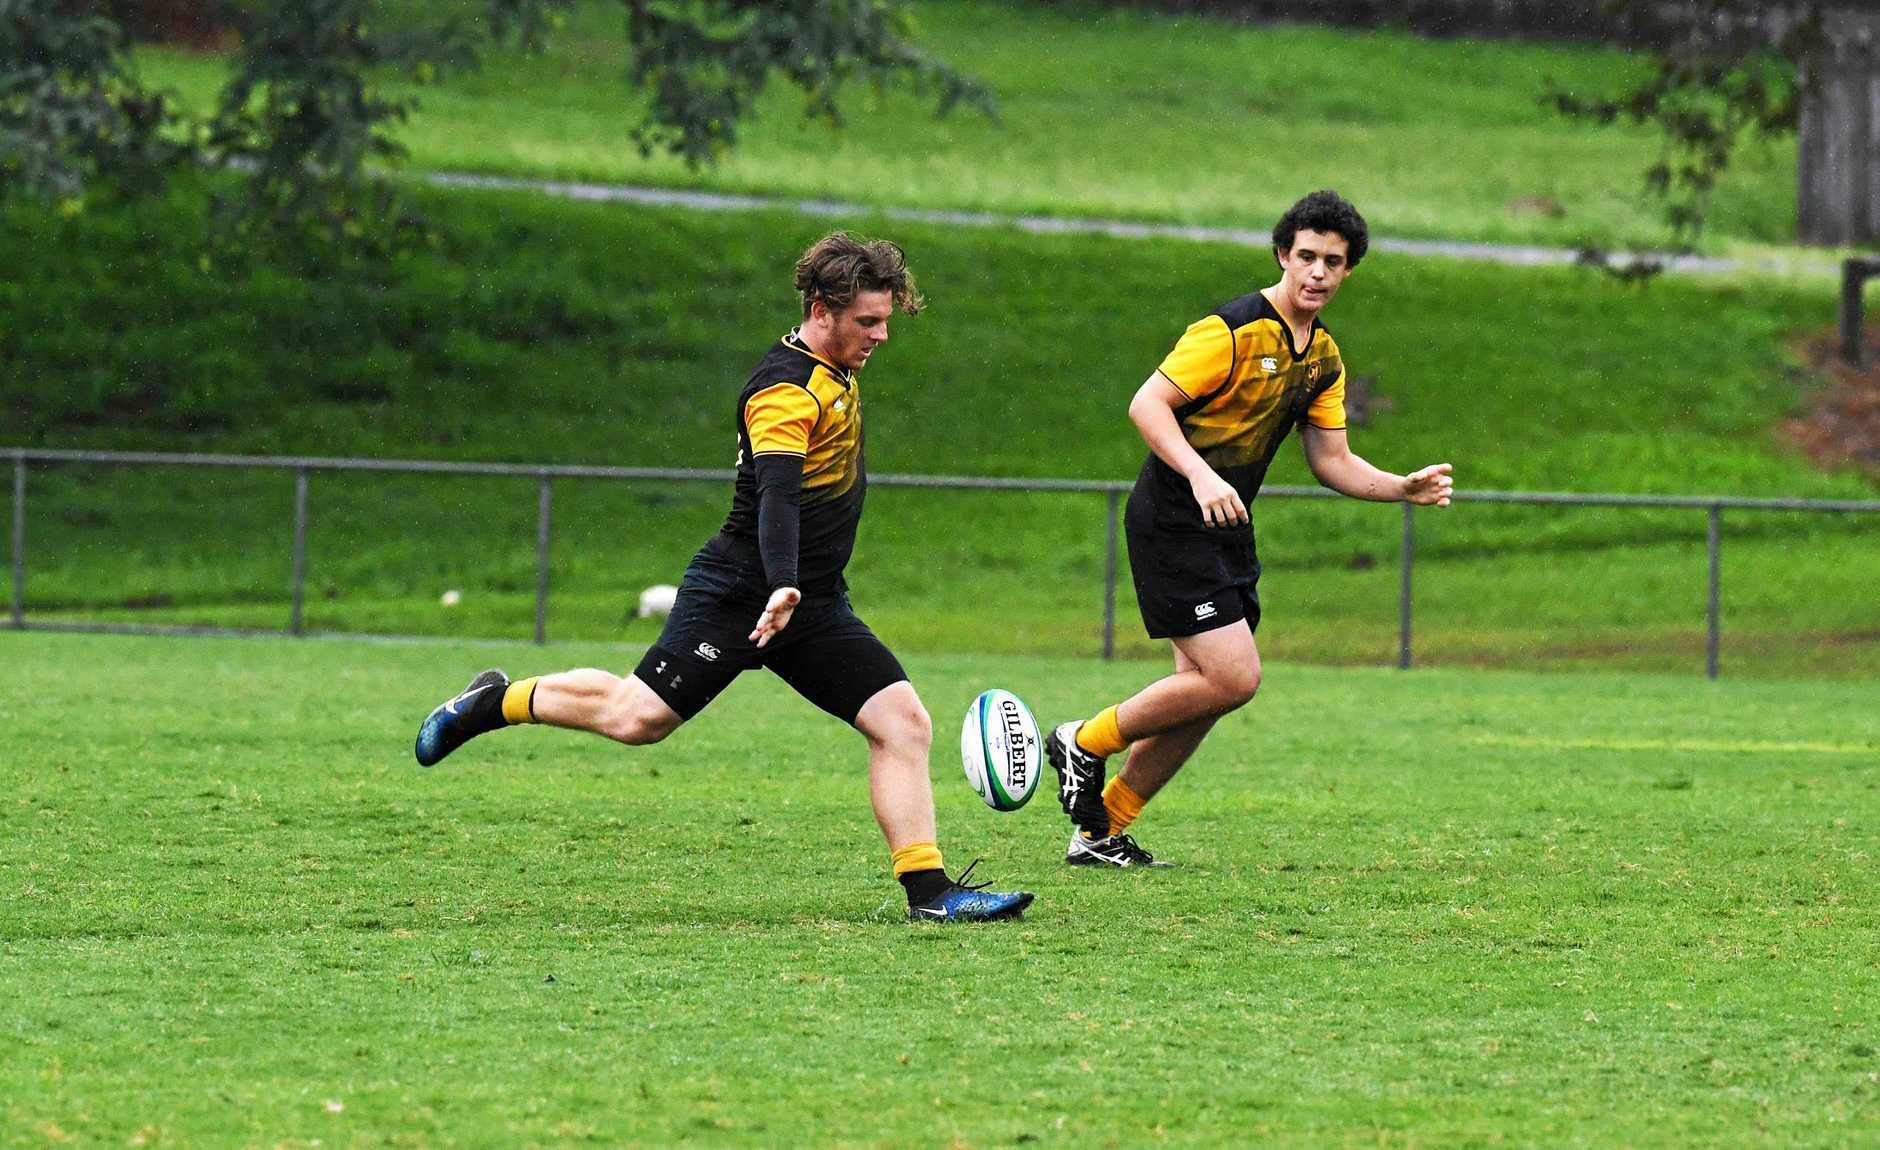 Gympie School Rugby Comp - James Nash player Brae McAllister.